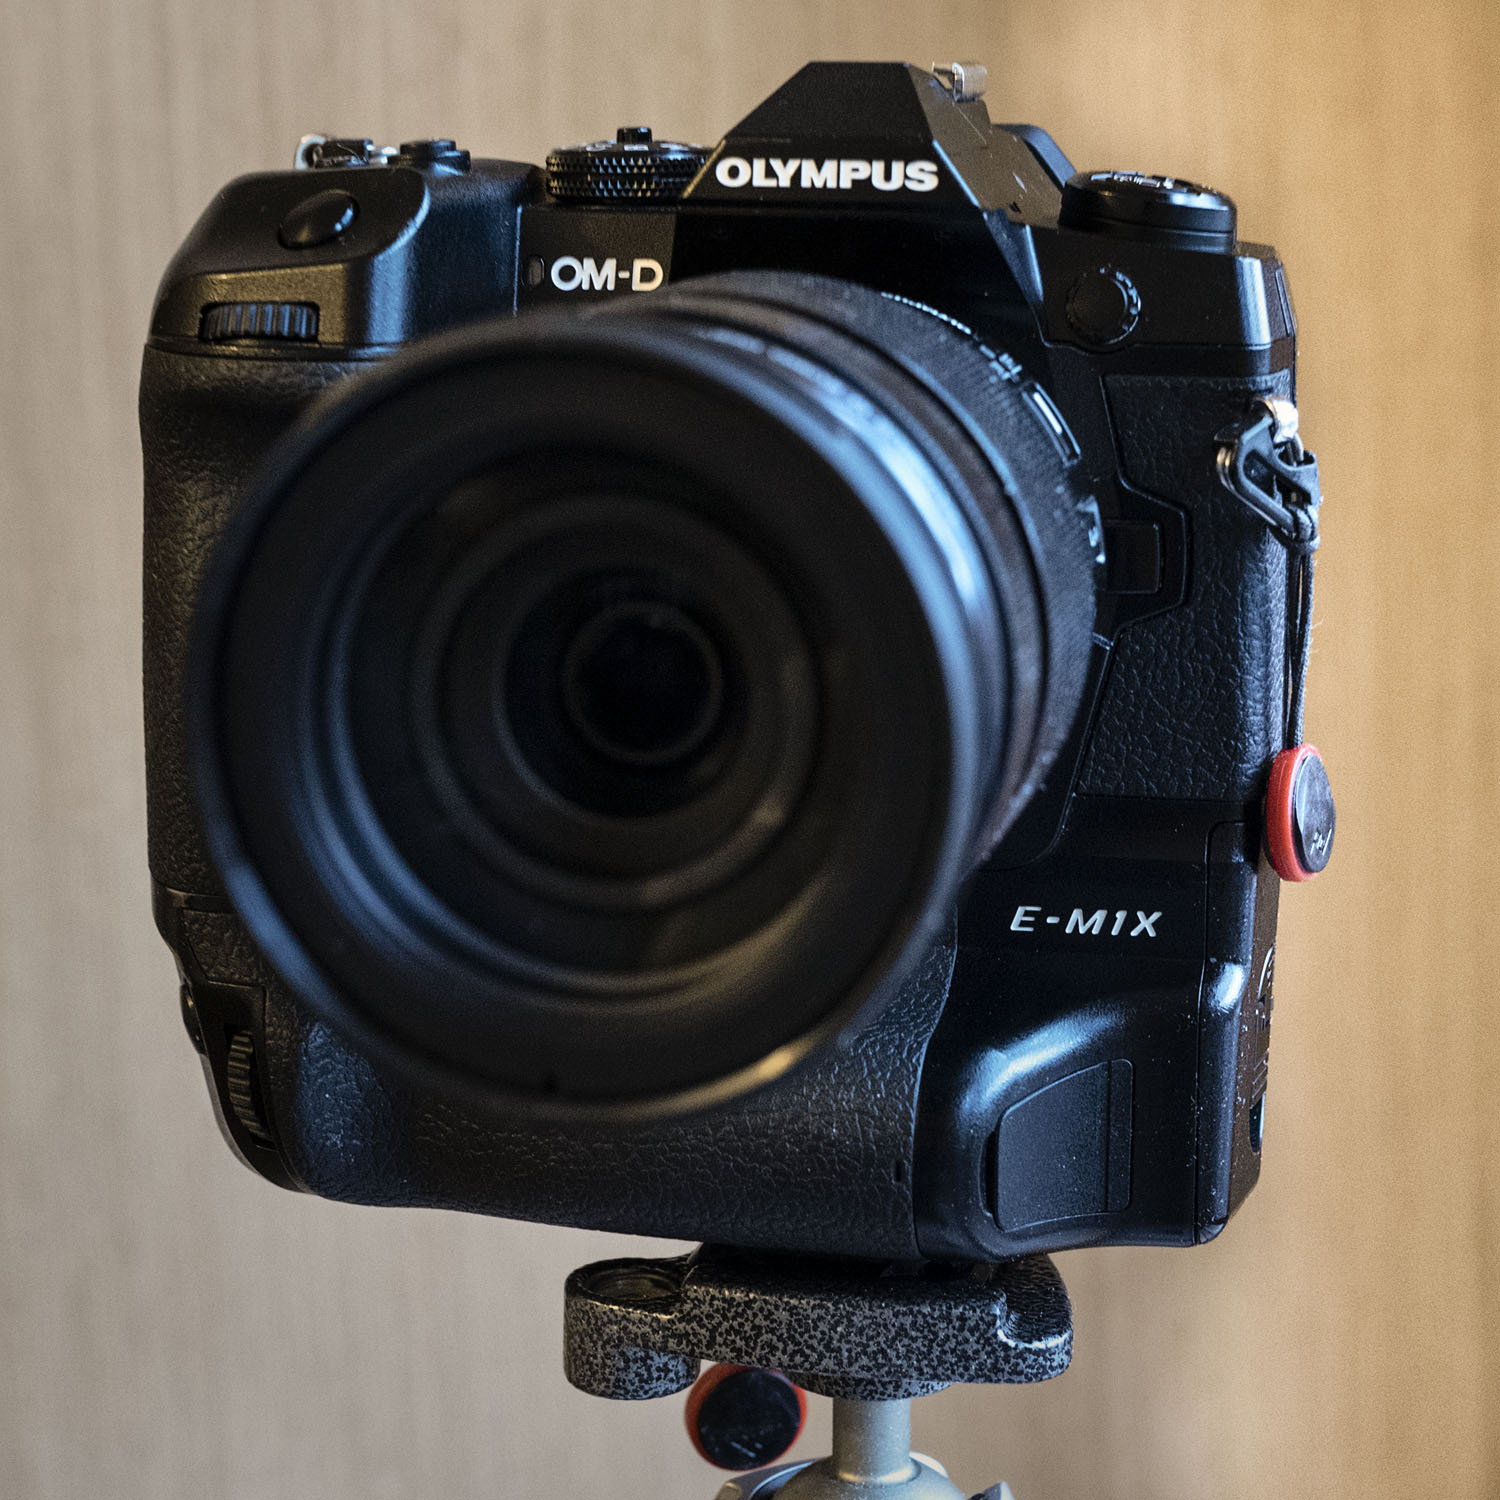 Image: The EM1X the new professional-grade camera from Olympus